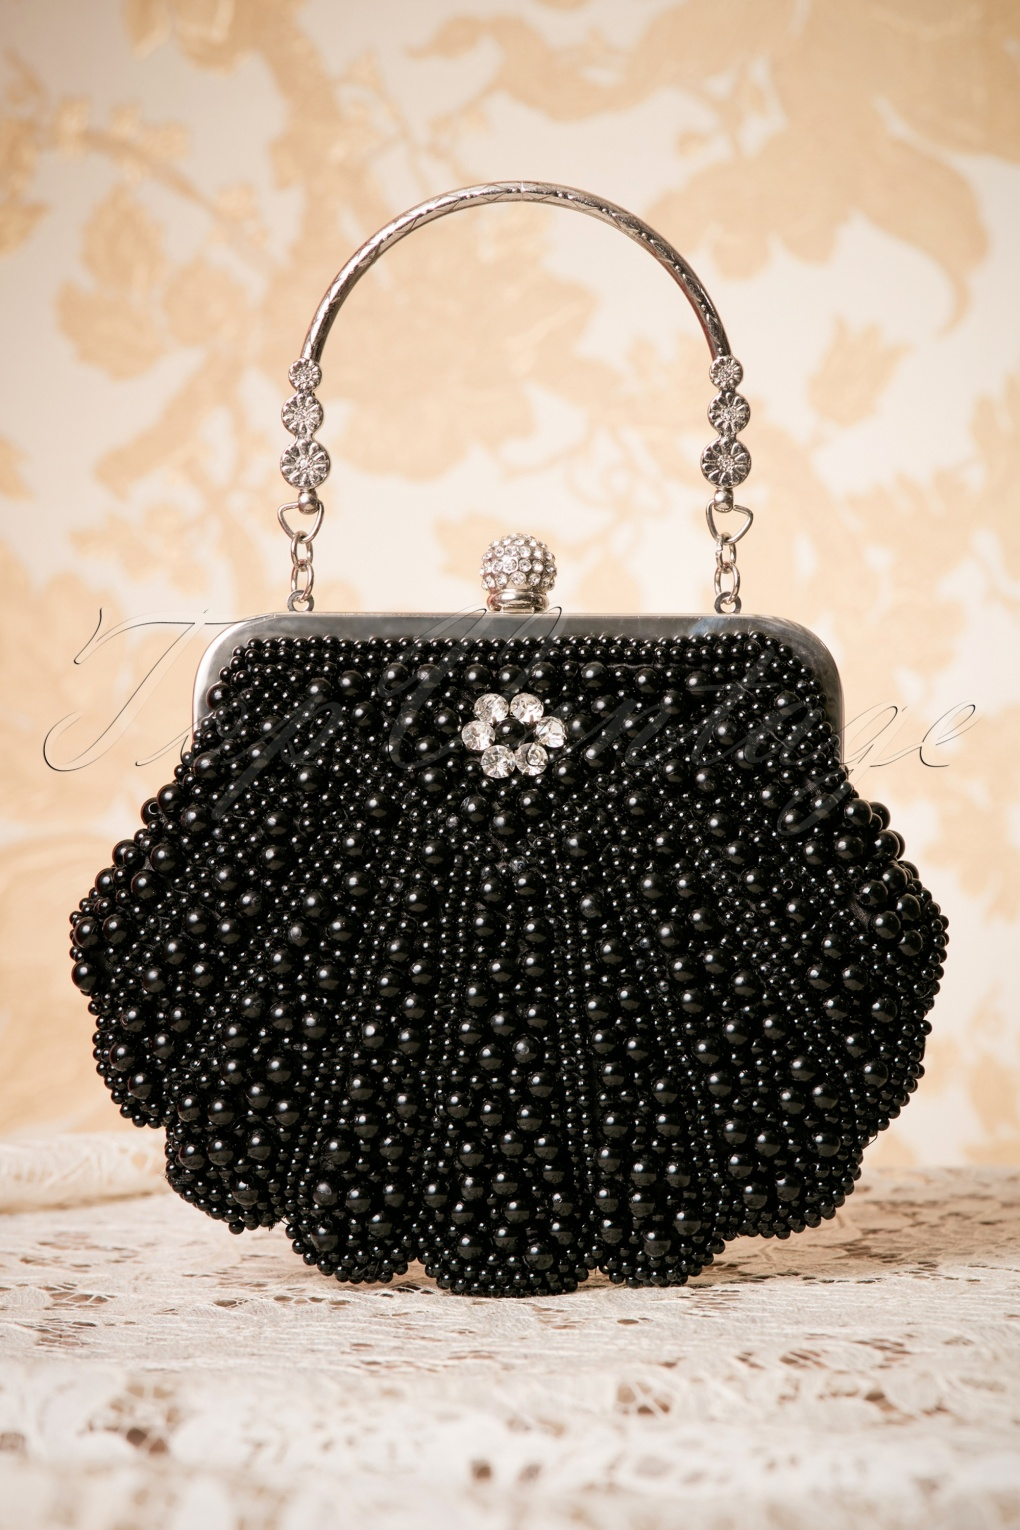 1920s Handbags, Purses, and Shopping Bag Styles 20s Eleanor Beaded Handbag in Black £44.40 AT vintagedancer.com